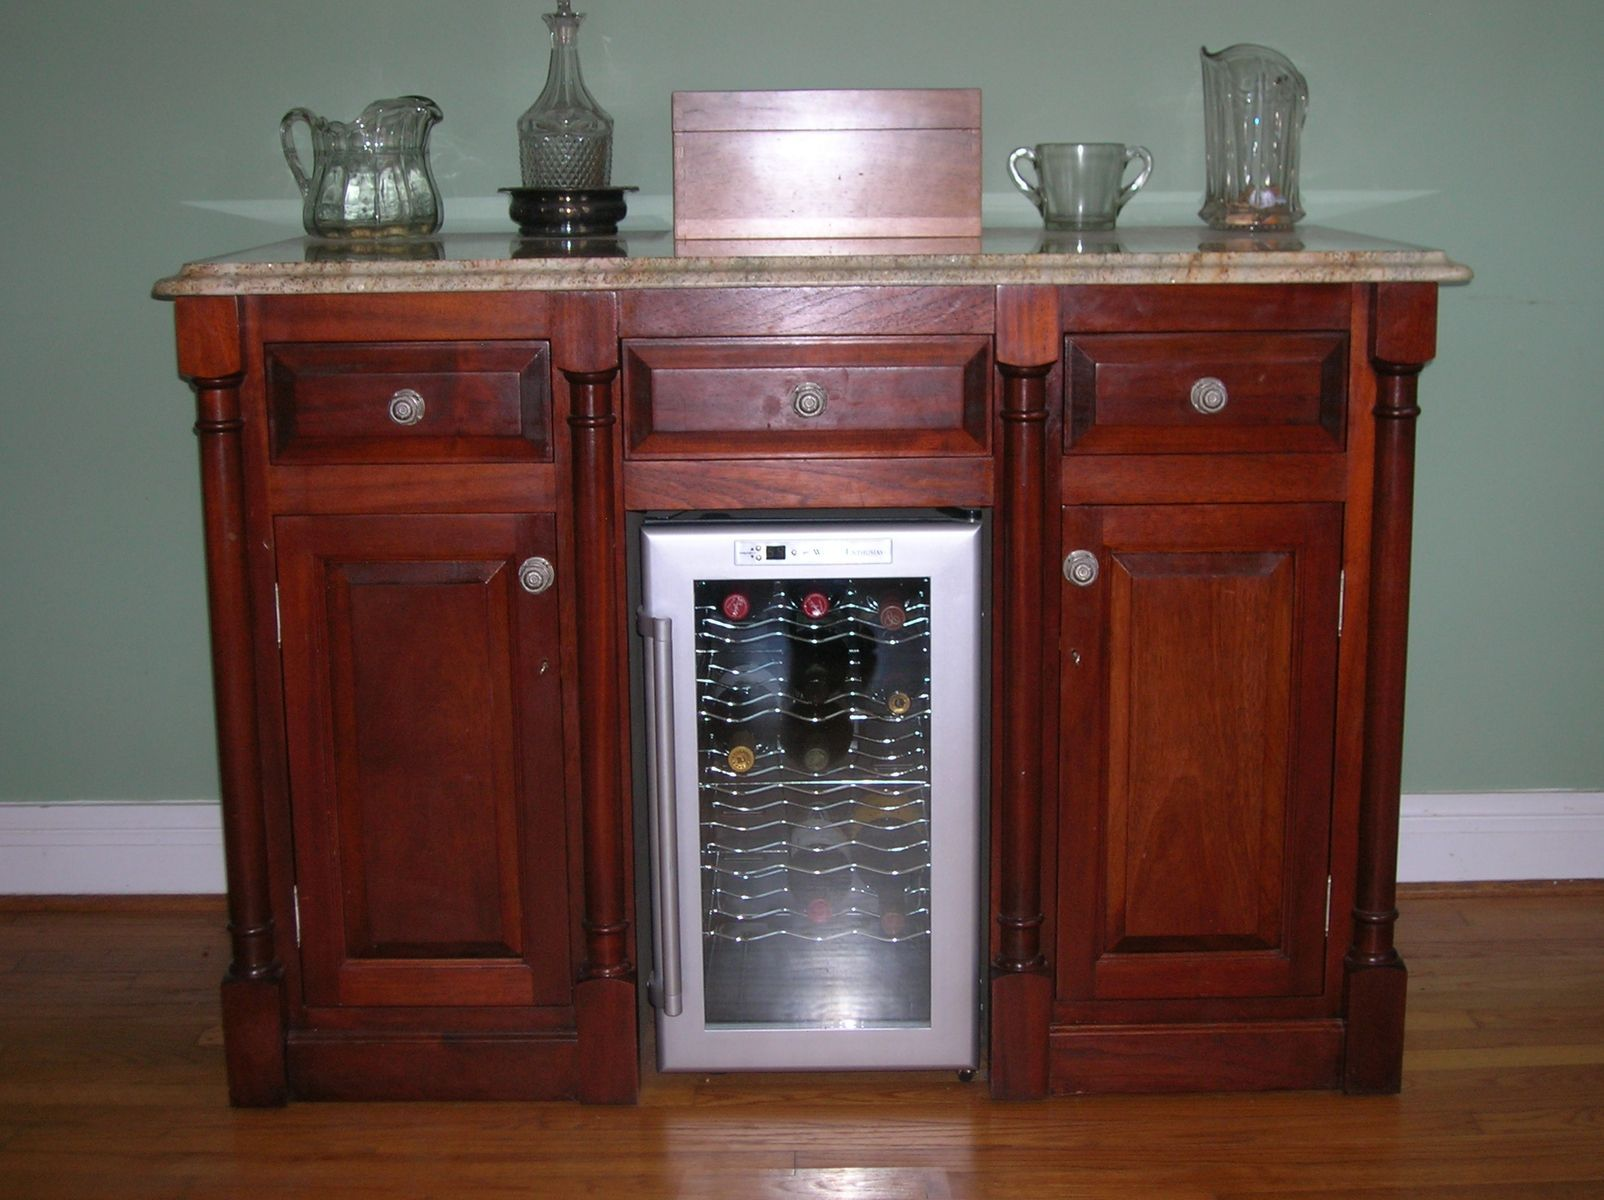 Best Home Bar Ever Wine Bar Cabinet Home Bar Cabinet Wine Rack Cabinet